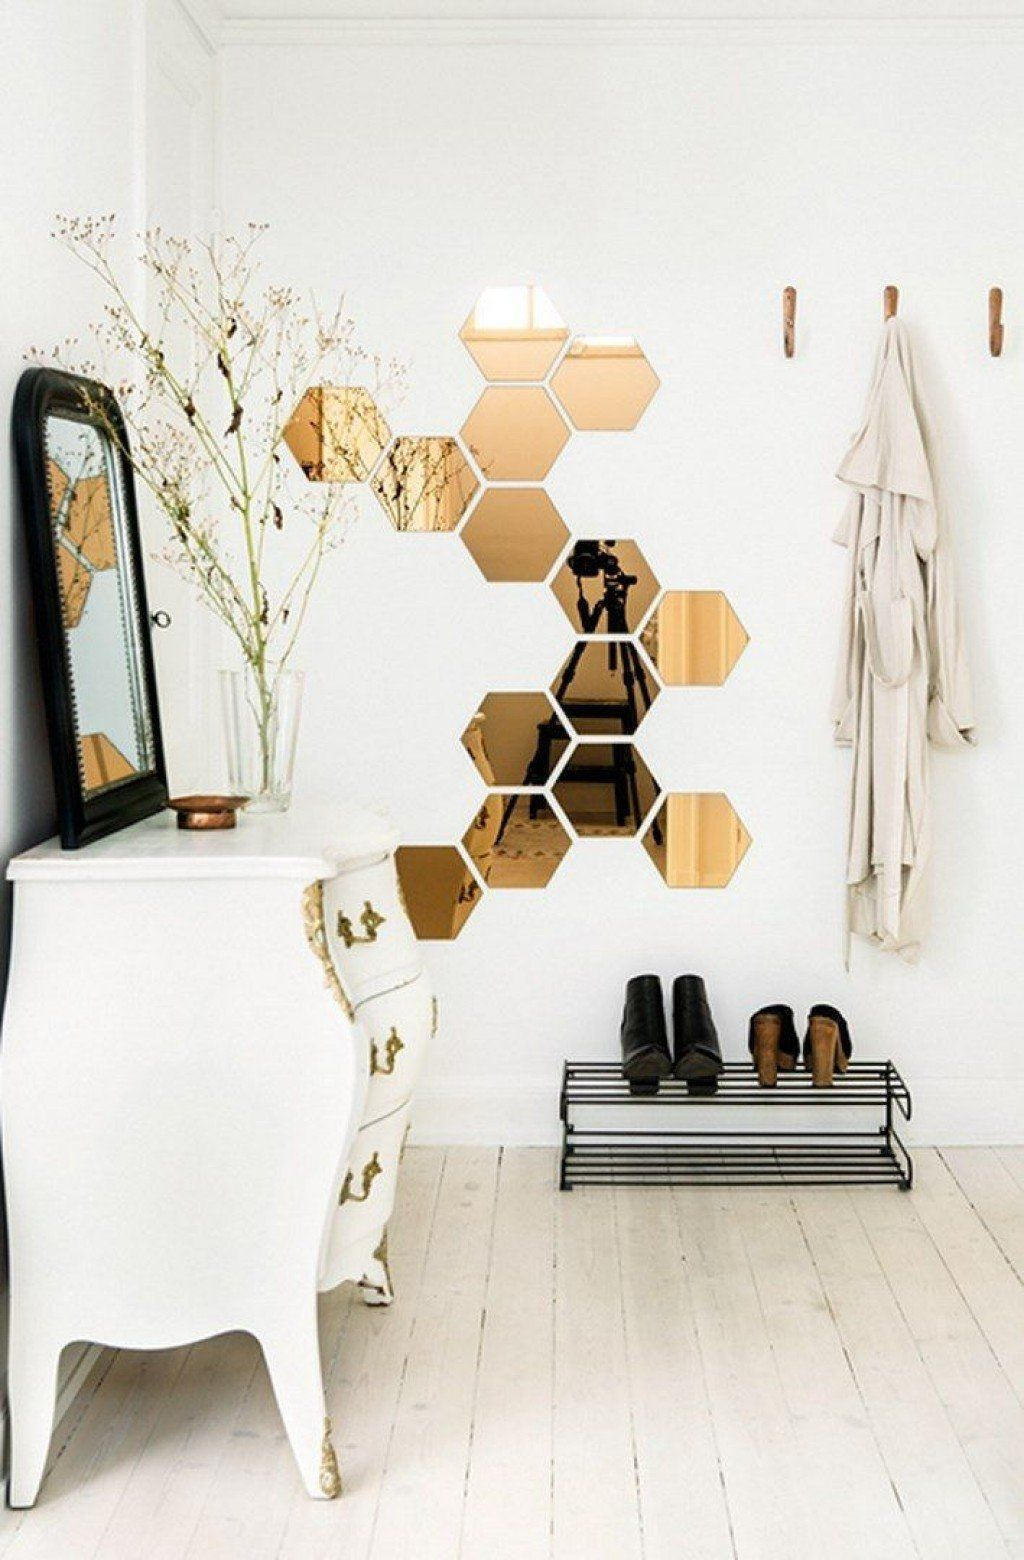 hexagon mirror tiles. simple and unique wall decor inspired